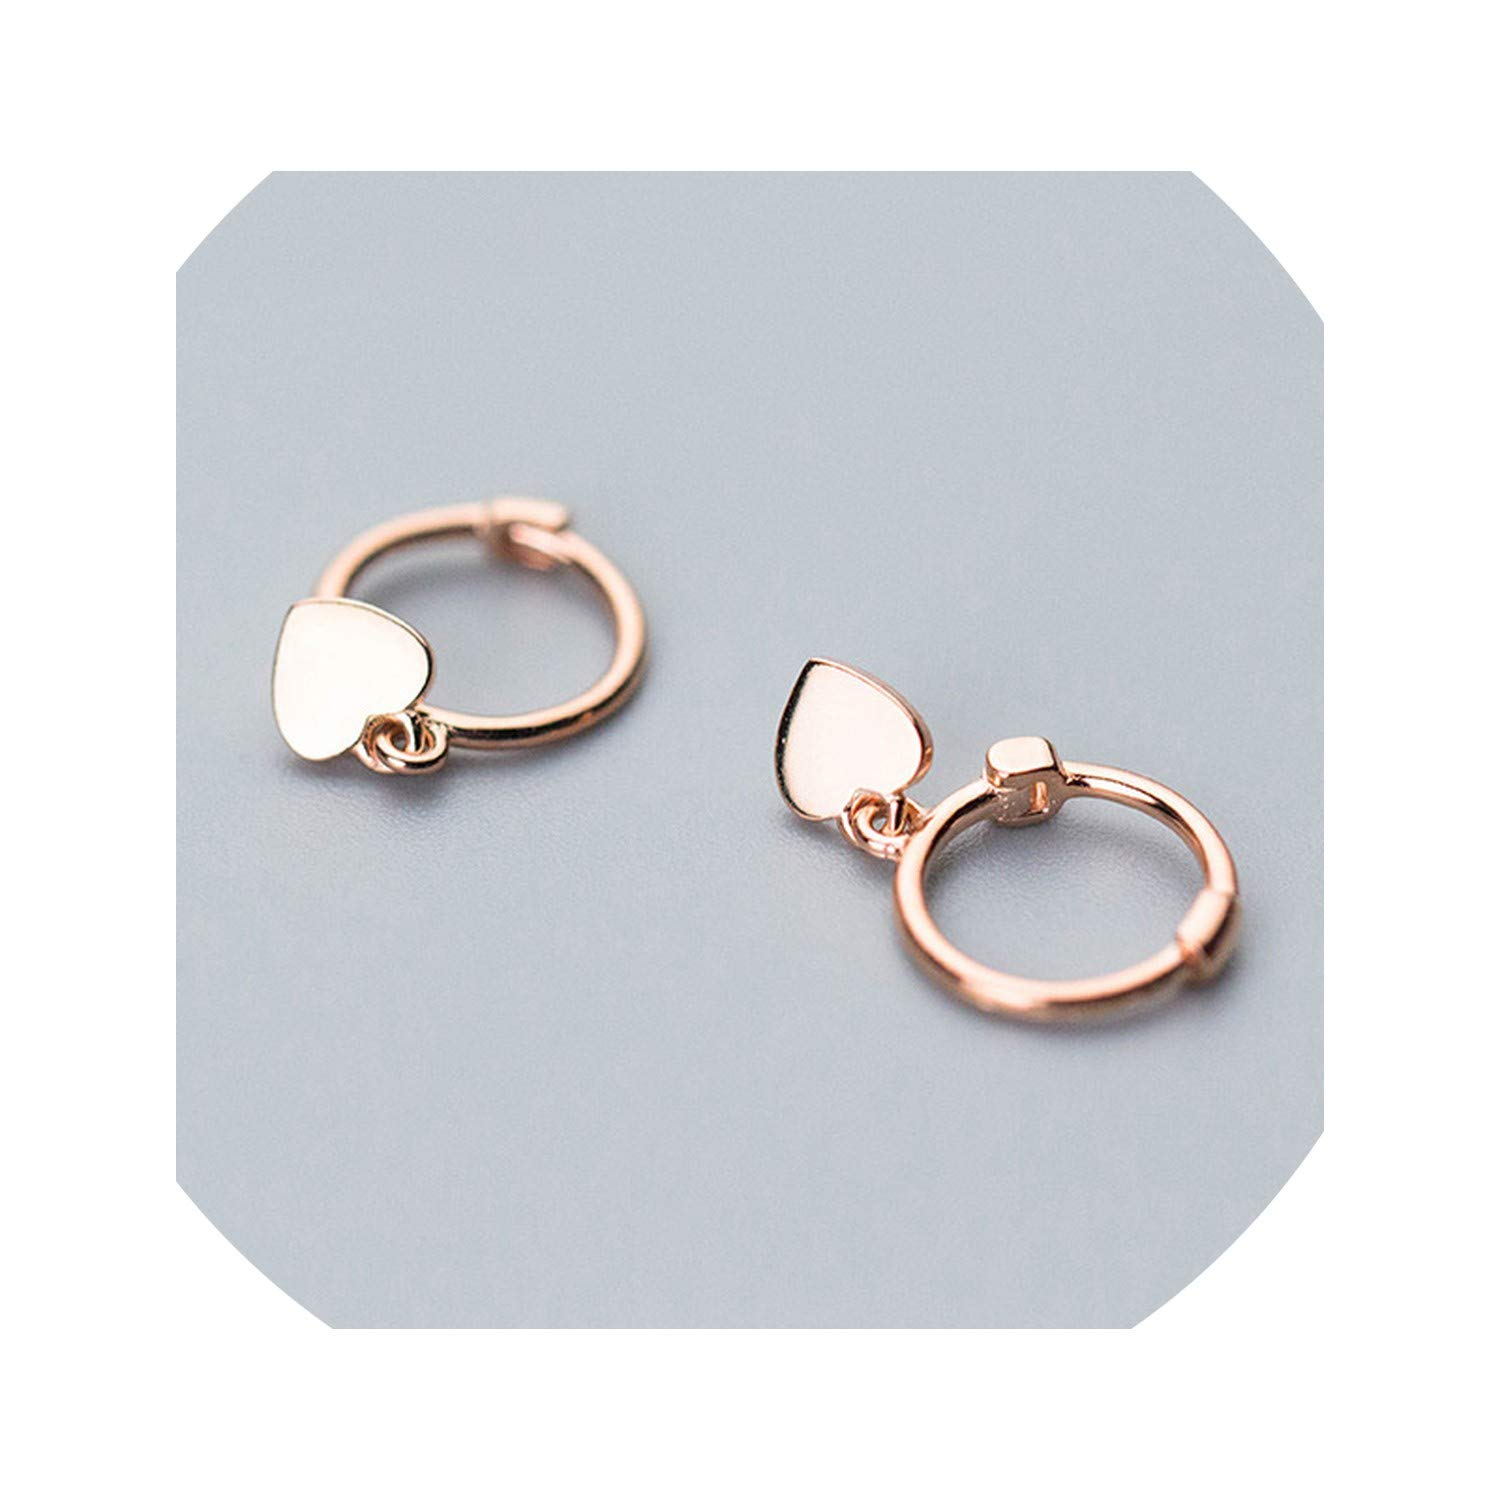 Rose Gold Color Heart Charm Stud Earrings sterling-silver-jewelry Small Studs Earring